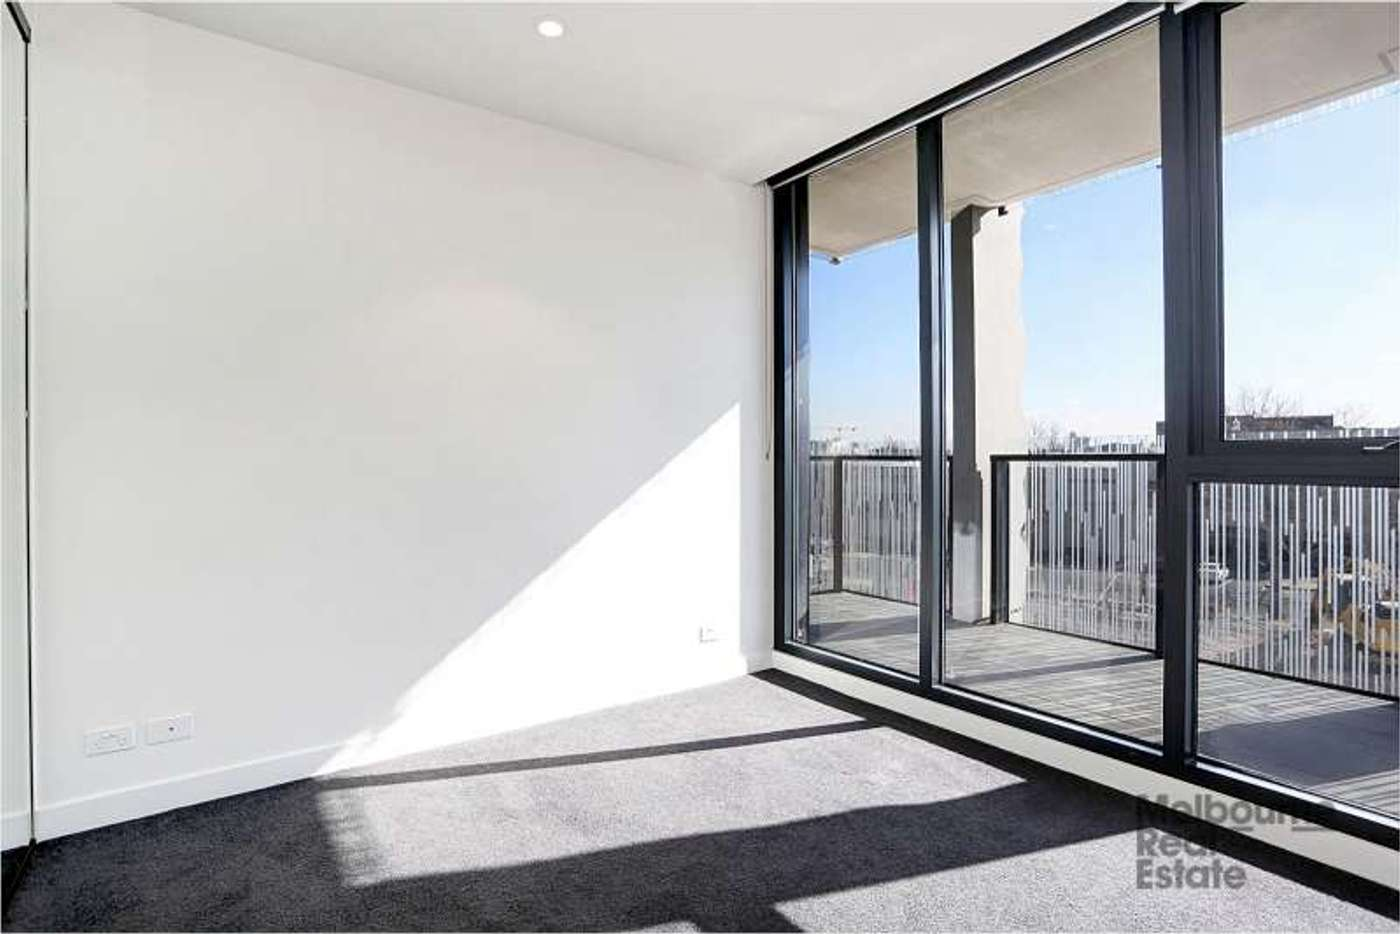 Sixth view of Homely apartment listing, 203/130 Dudley Street, West Melbourne VIC 3003